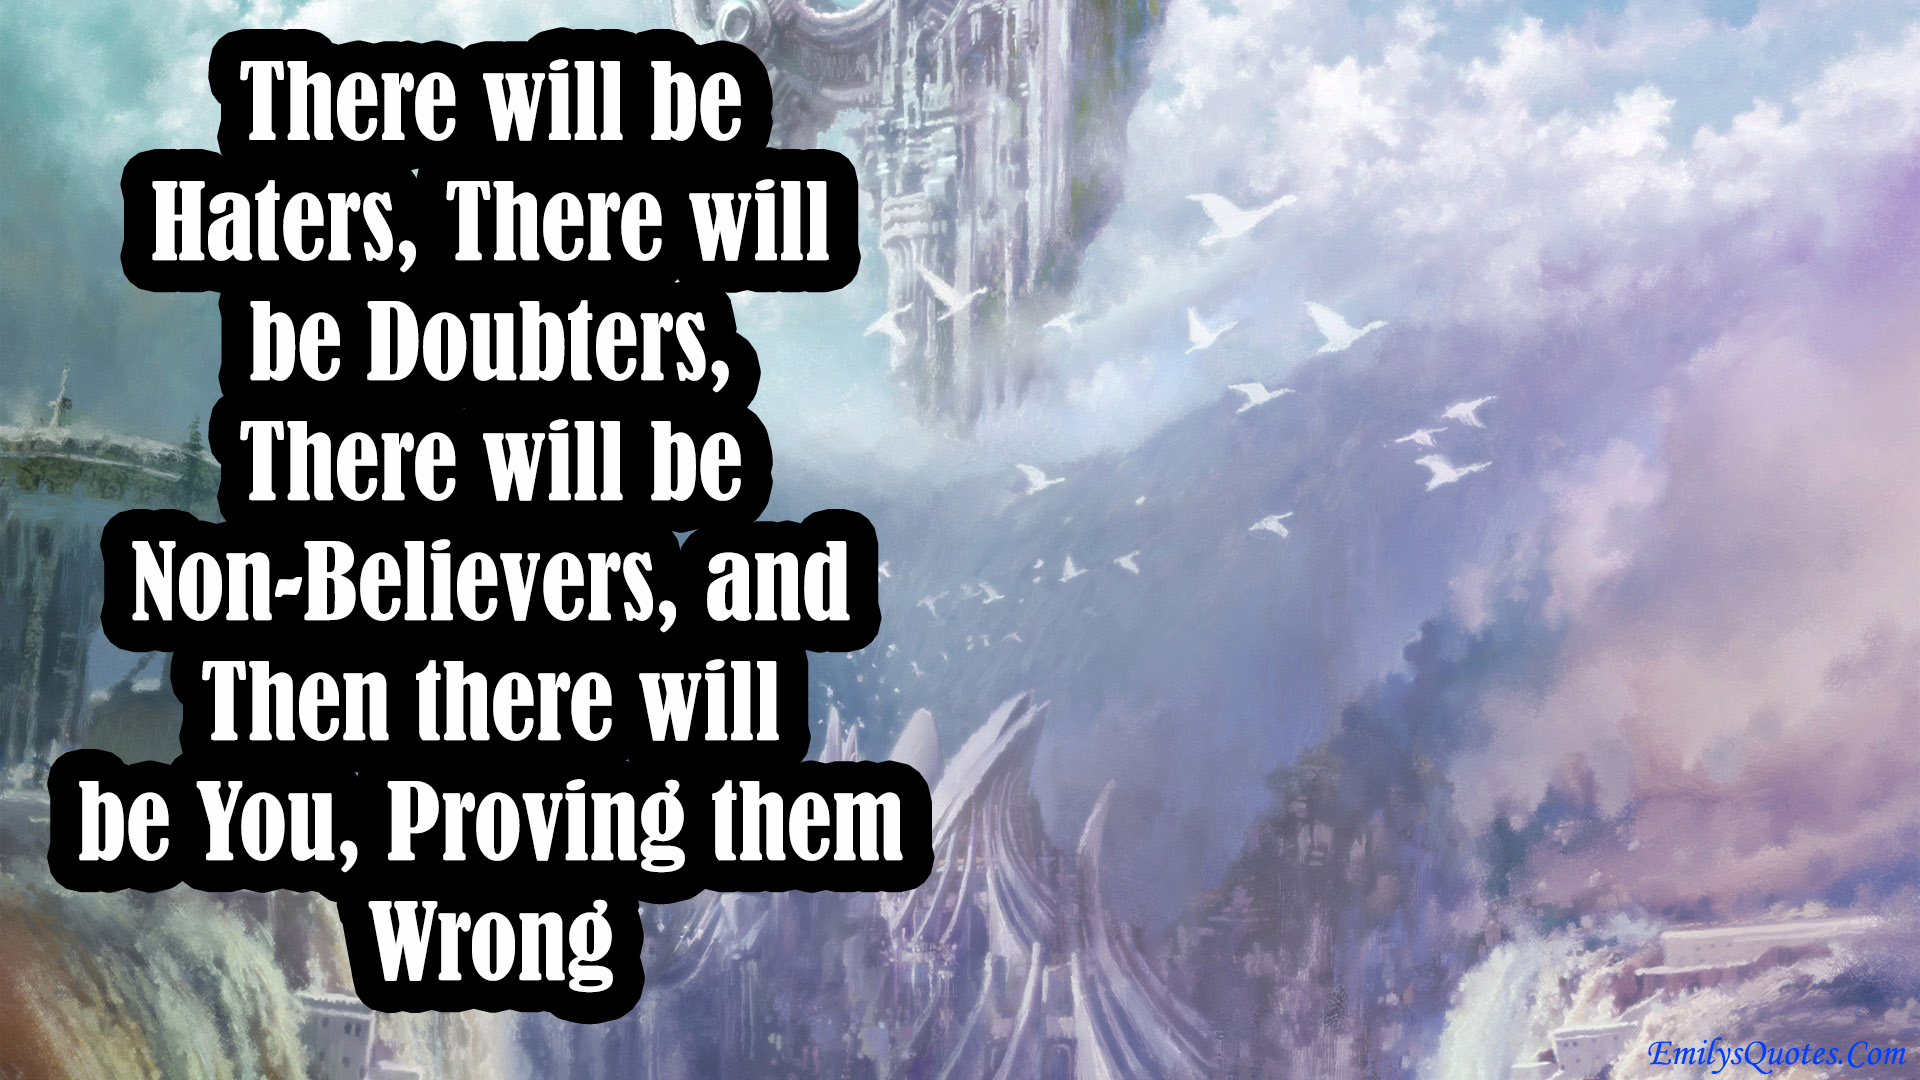 There Will Be Haters, There Will Be Doubters